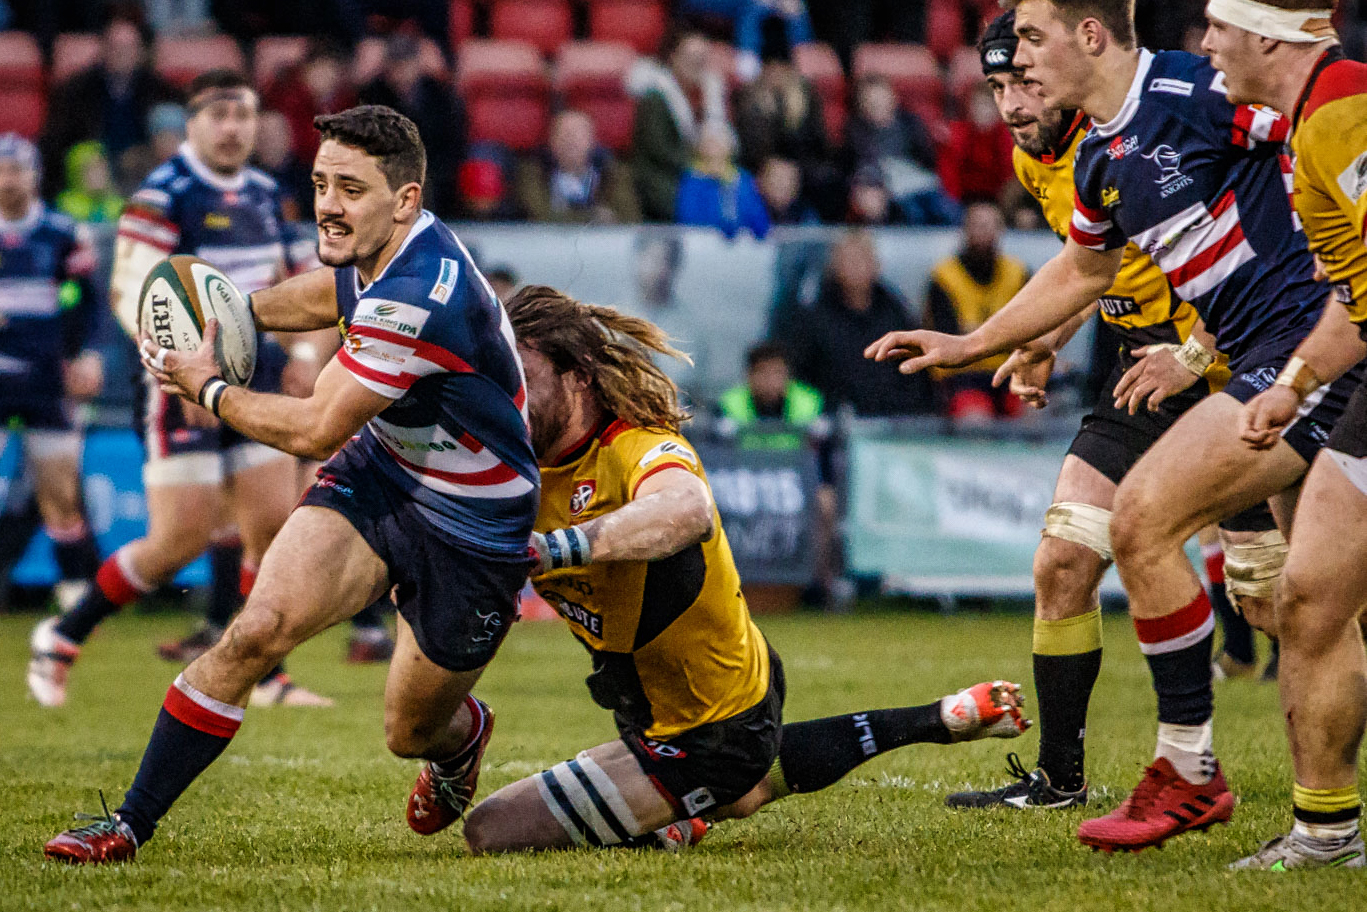 Paul Jarvis, try scorer, always a thorn in the Pirates' defence